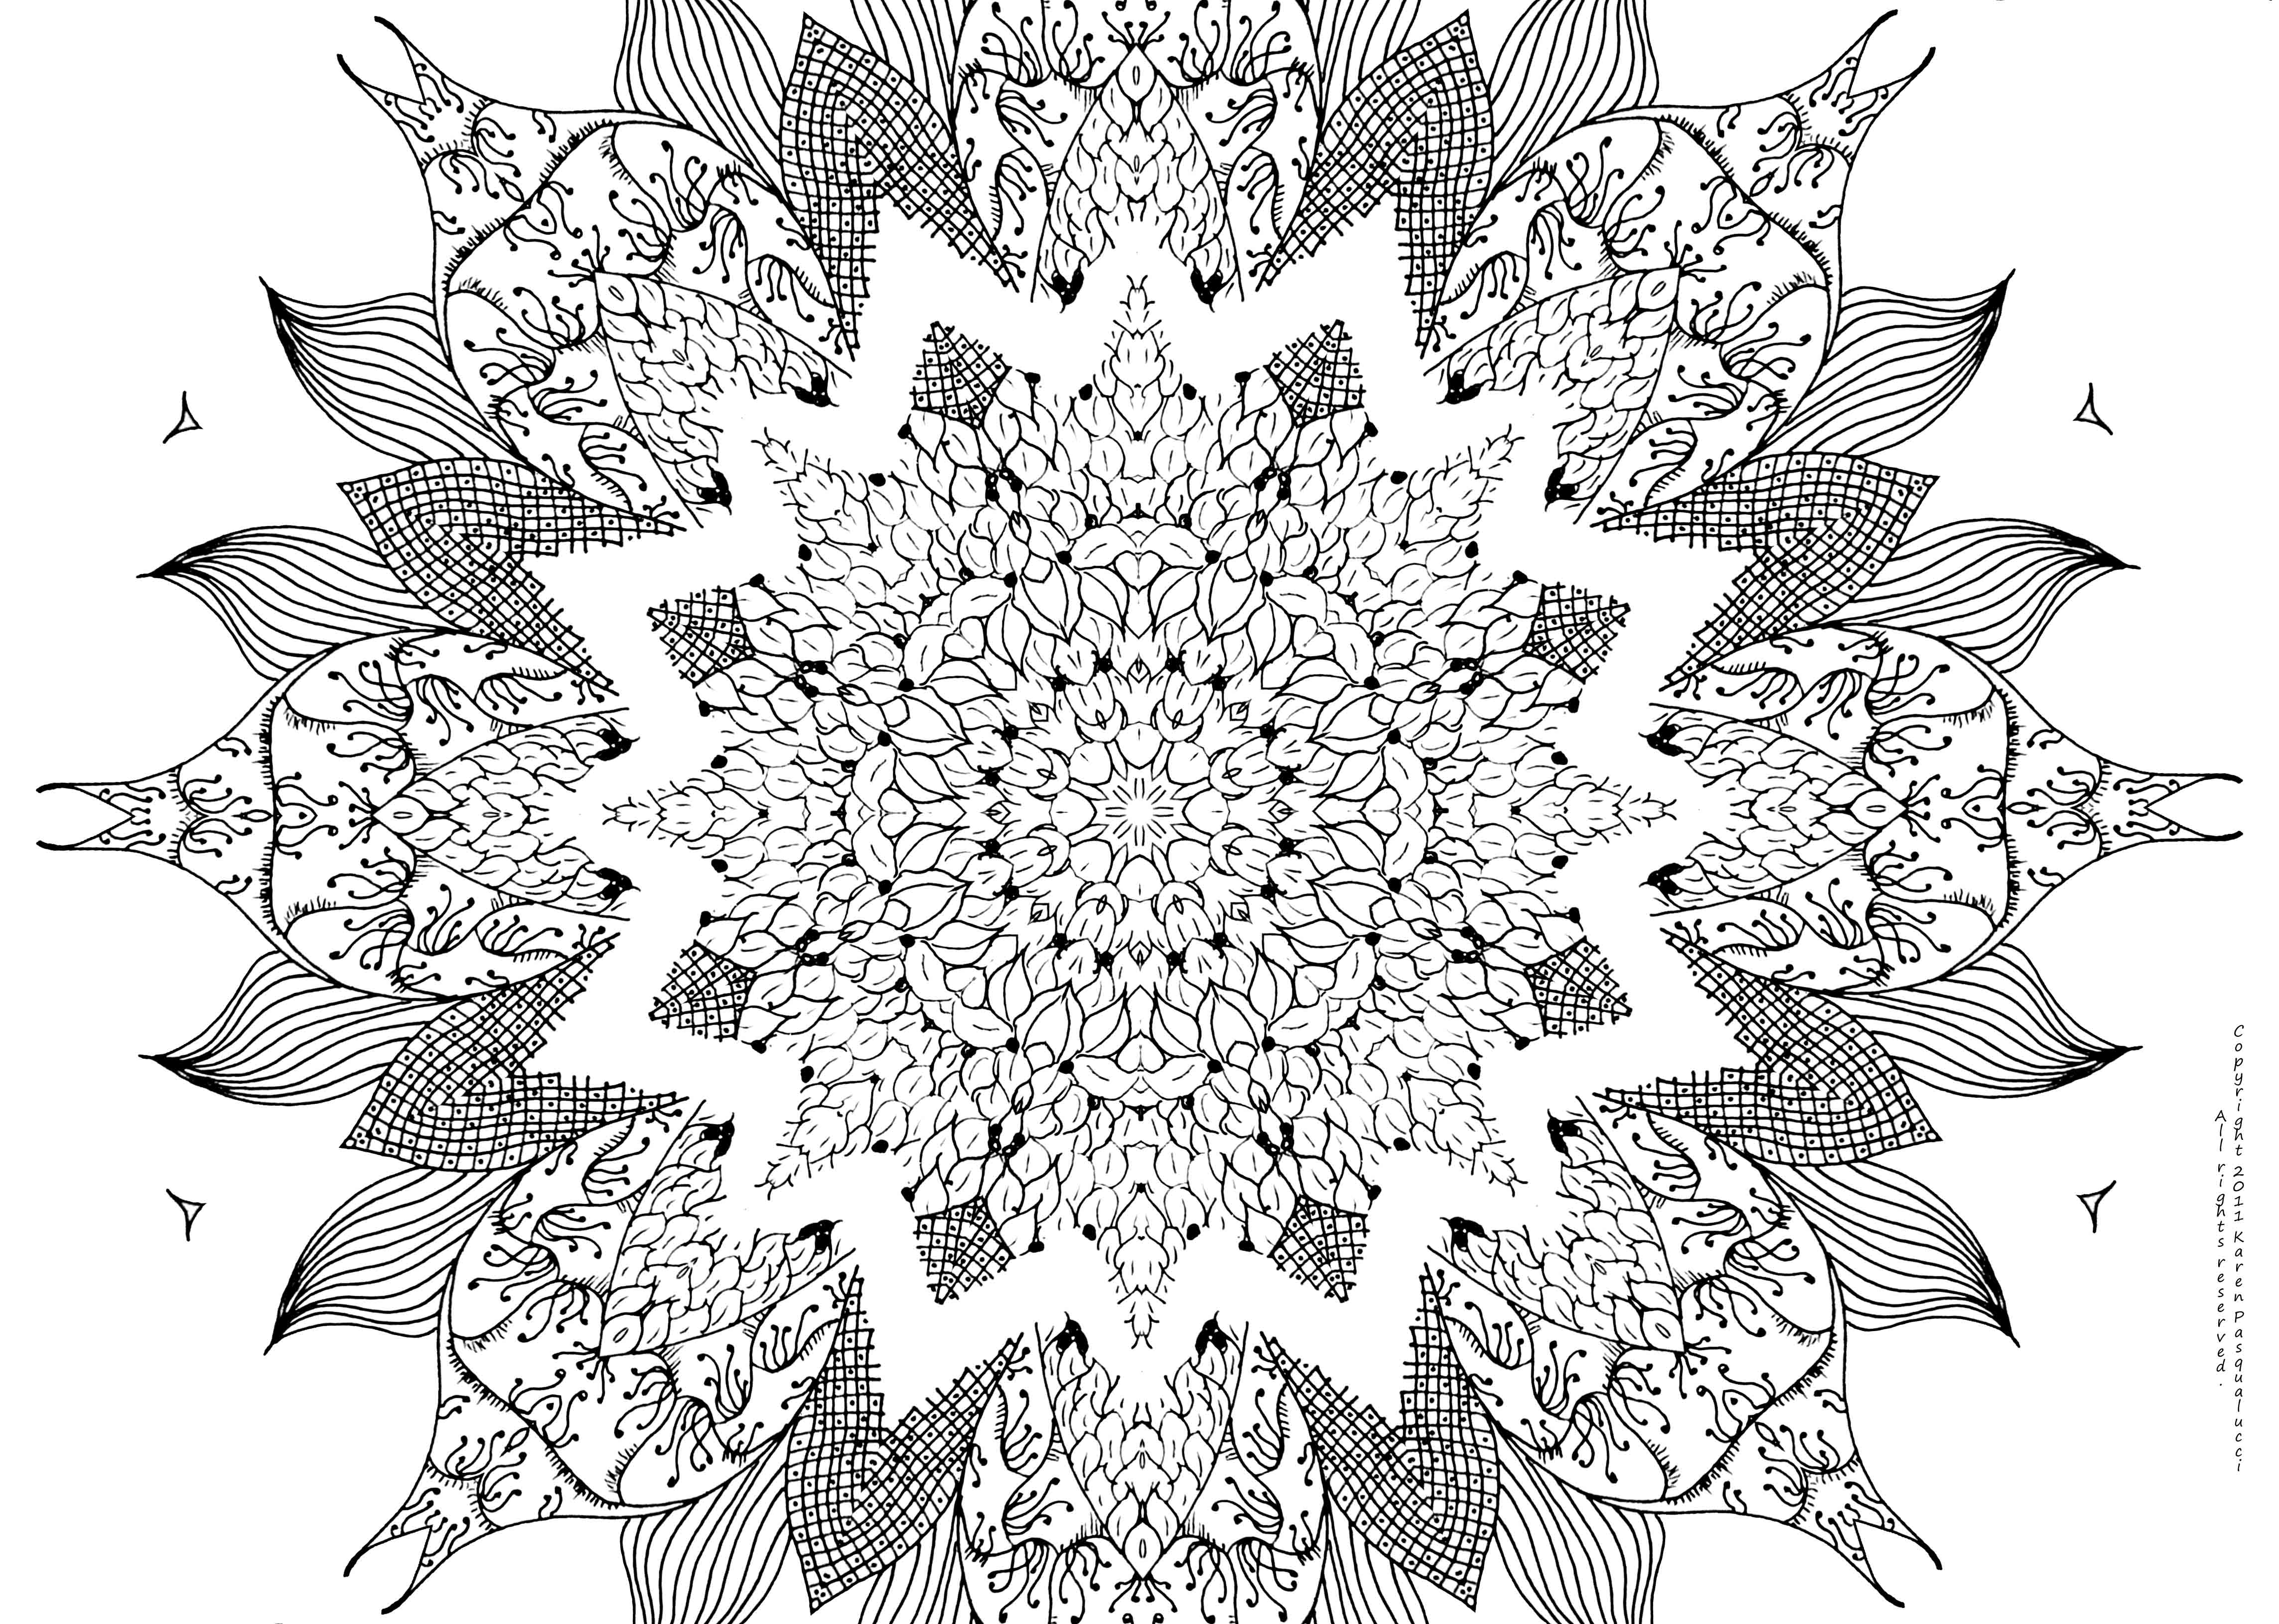 Stress relief coloring pages for kids - Advanced Mandala Coloring Pages Free Coloring Pages Images Pictures